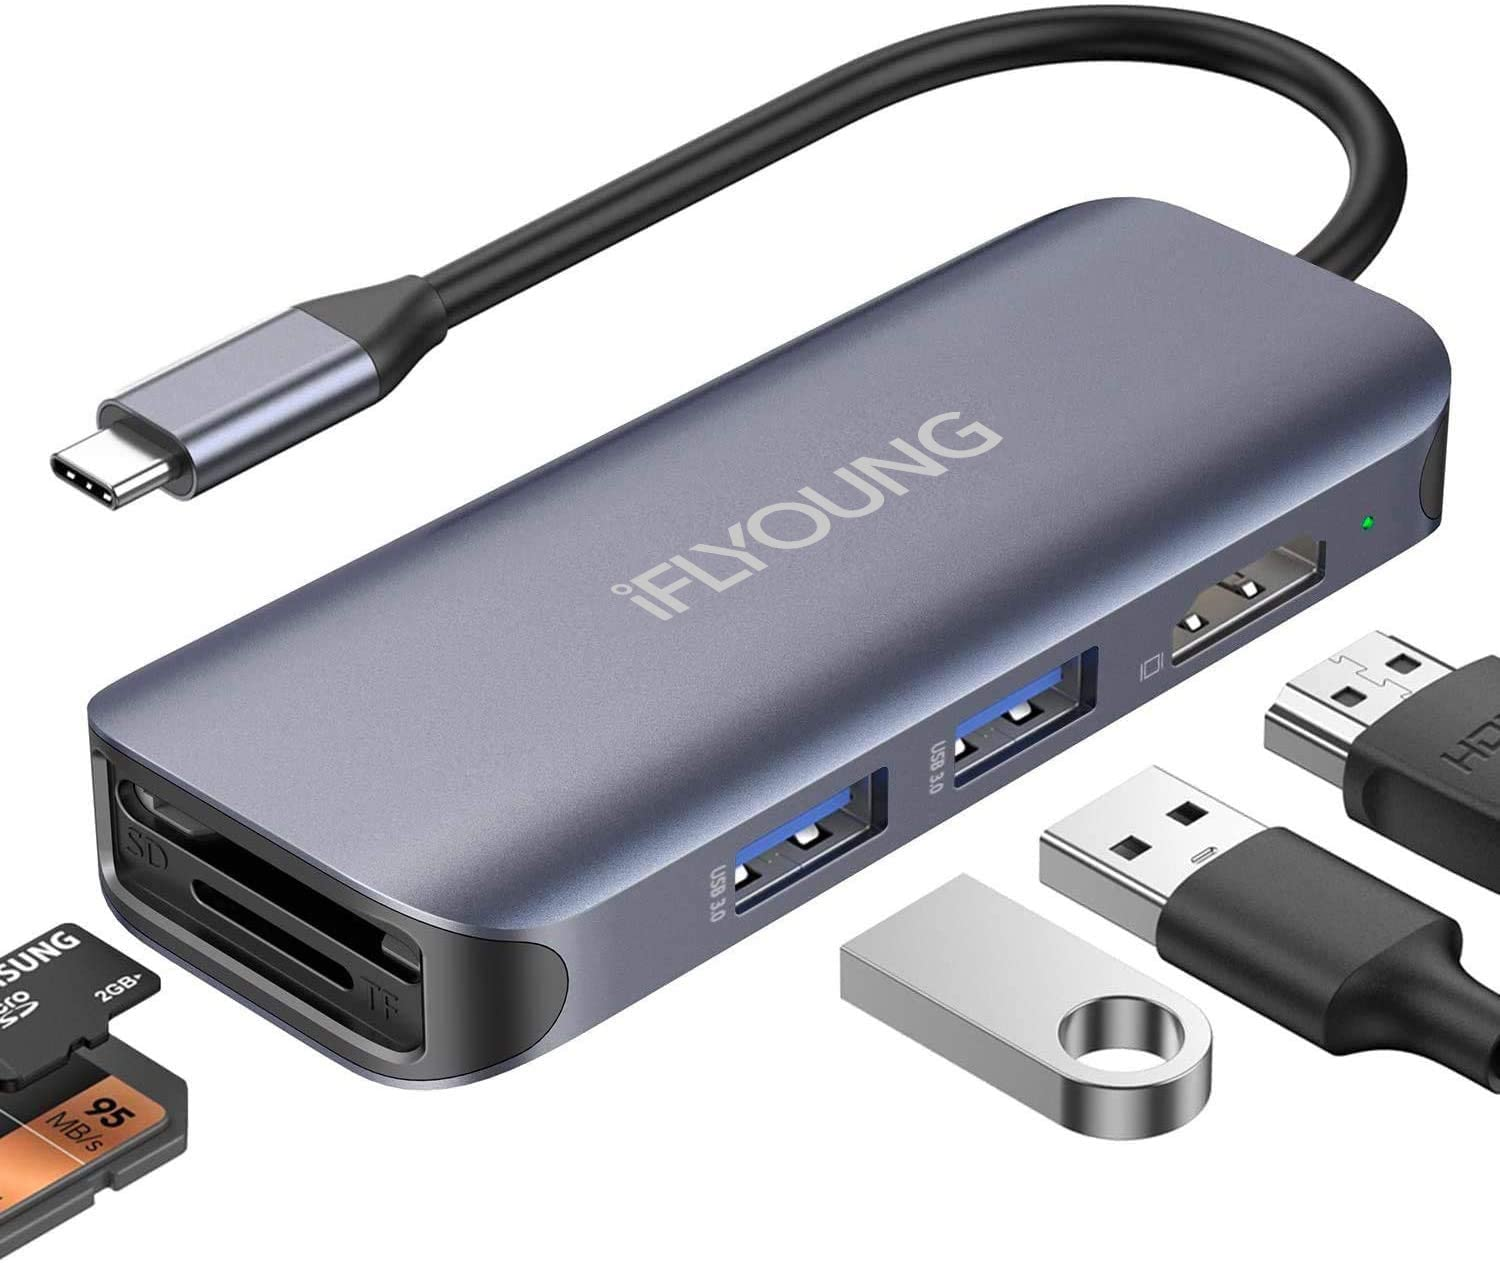 IFLYOUNG USB c hub Docking Station for Apple MacBook pro air13 inch Accessories to hdmi Lightning USB c to 4k hdmi Adapter Dual Monitor USB 3.0 hub Extension SD/TF 6 in 1 Type